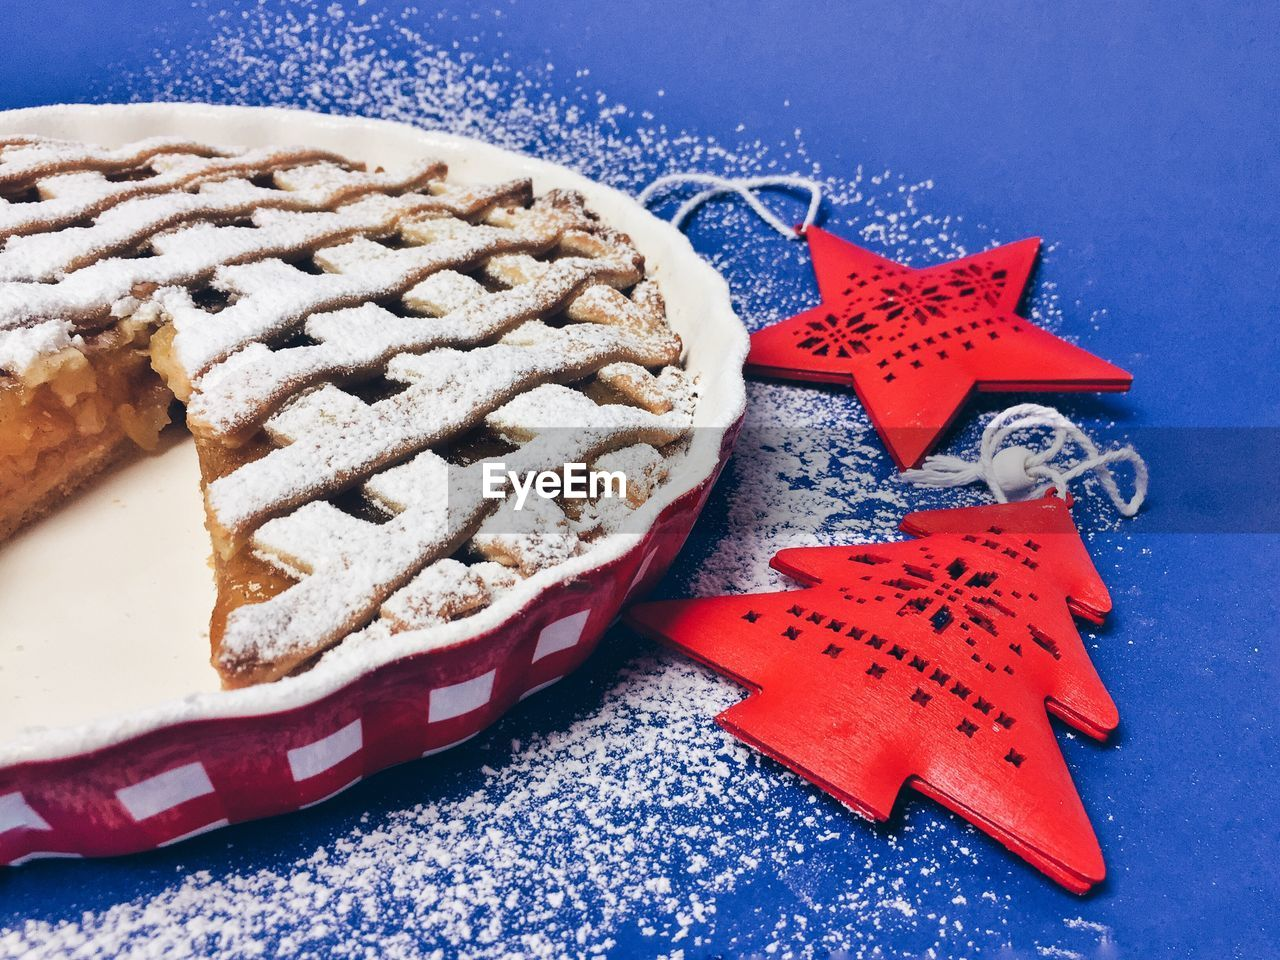 High Angle View Of Sweet Pie On Blue Table During Christmas